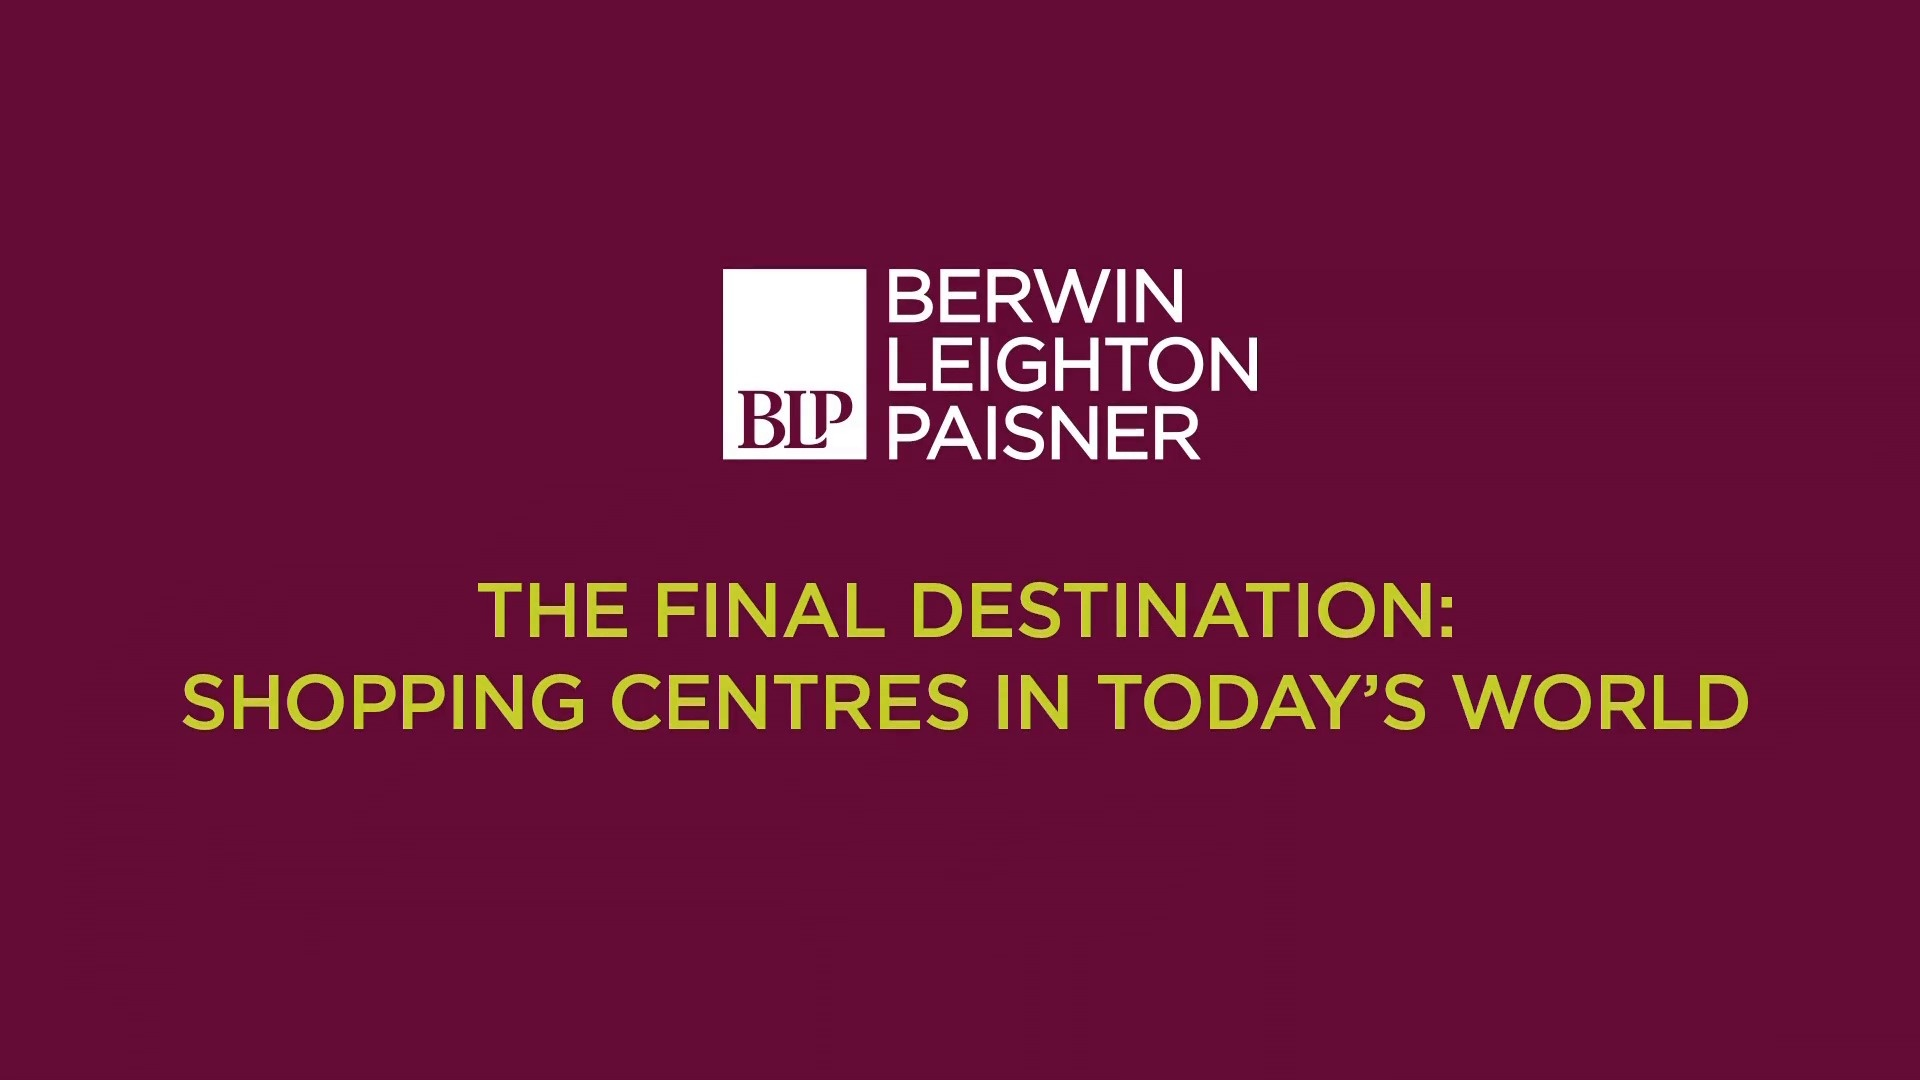 Still image from 'The final destination: shopping centres in today's world' video